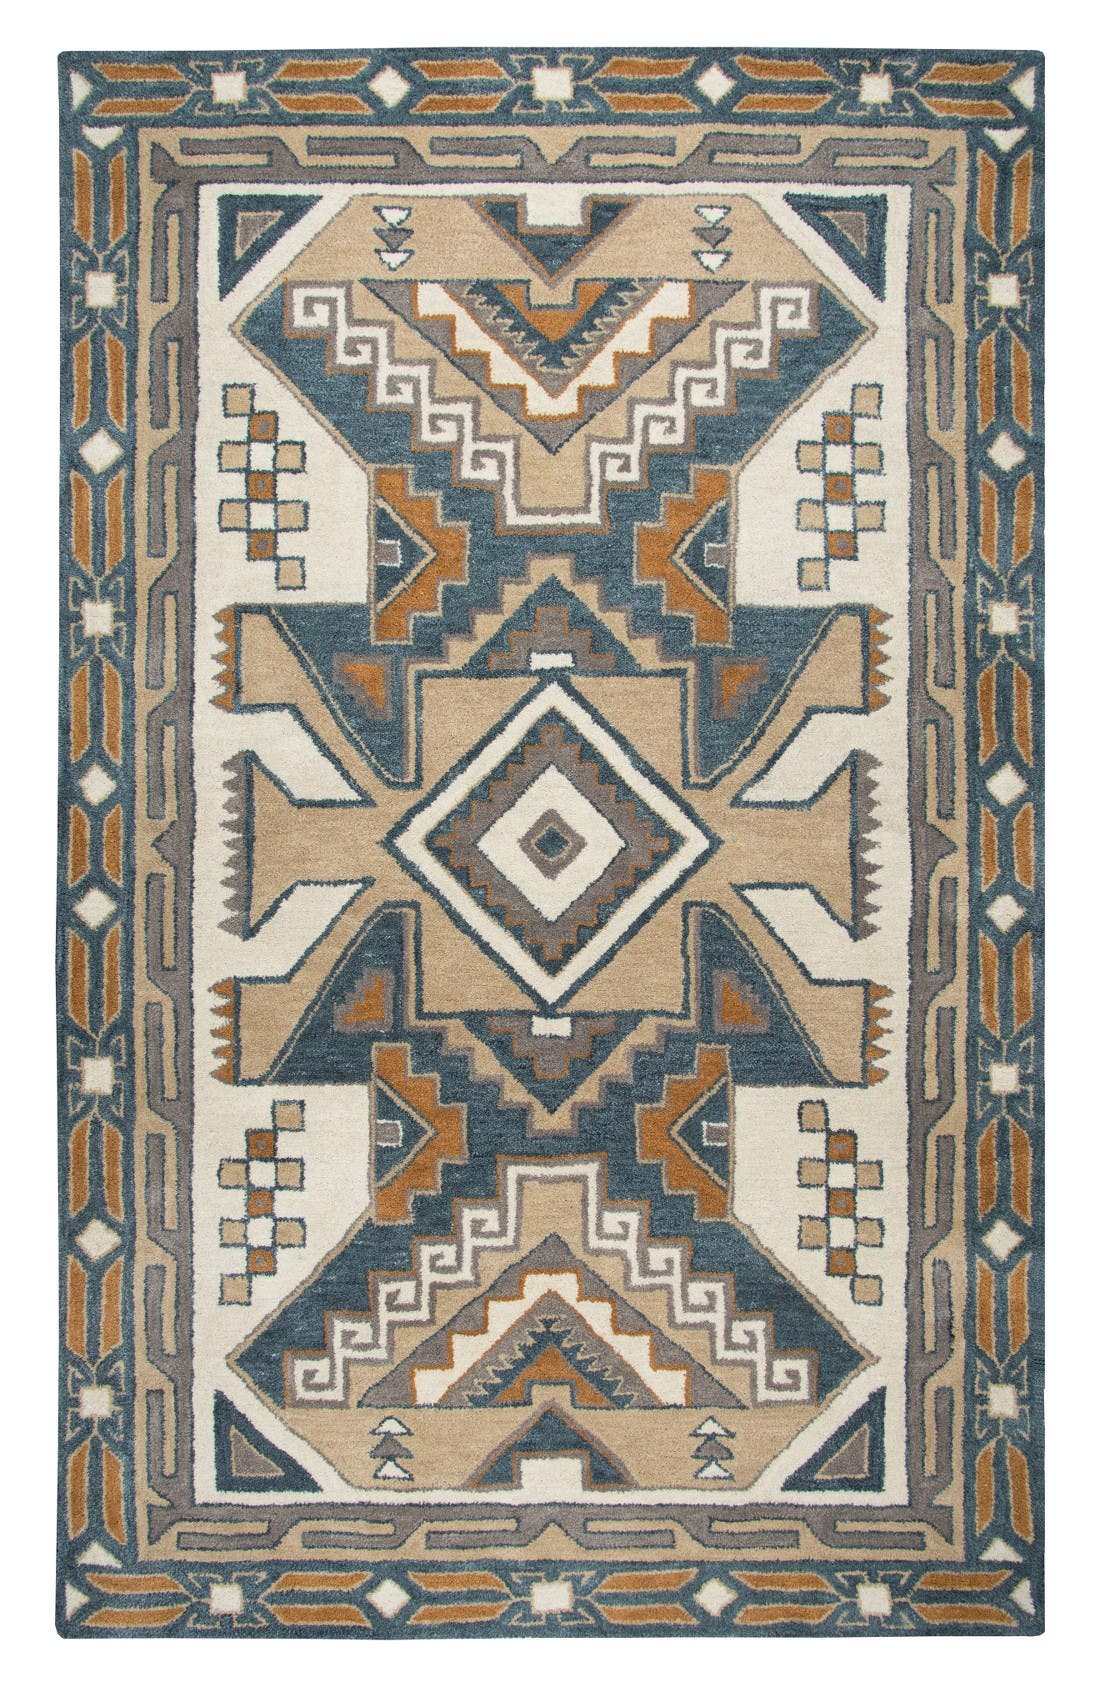 Urban Tiles Hand Tufted Wool Rug,                         Main,                         color, Beige/ Multi